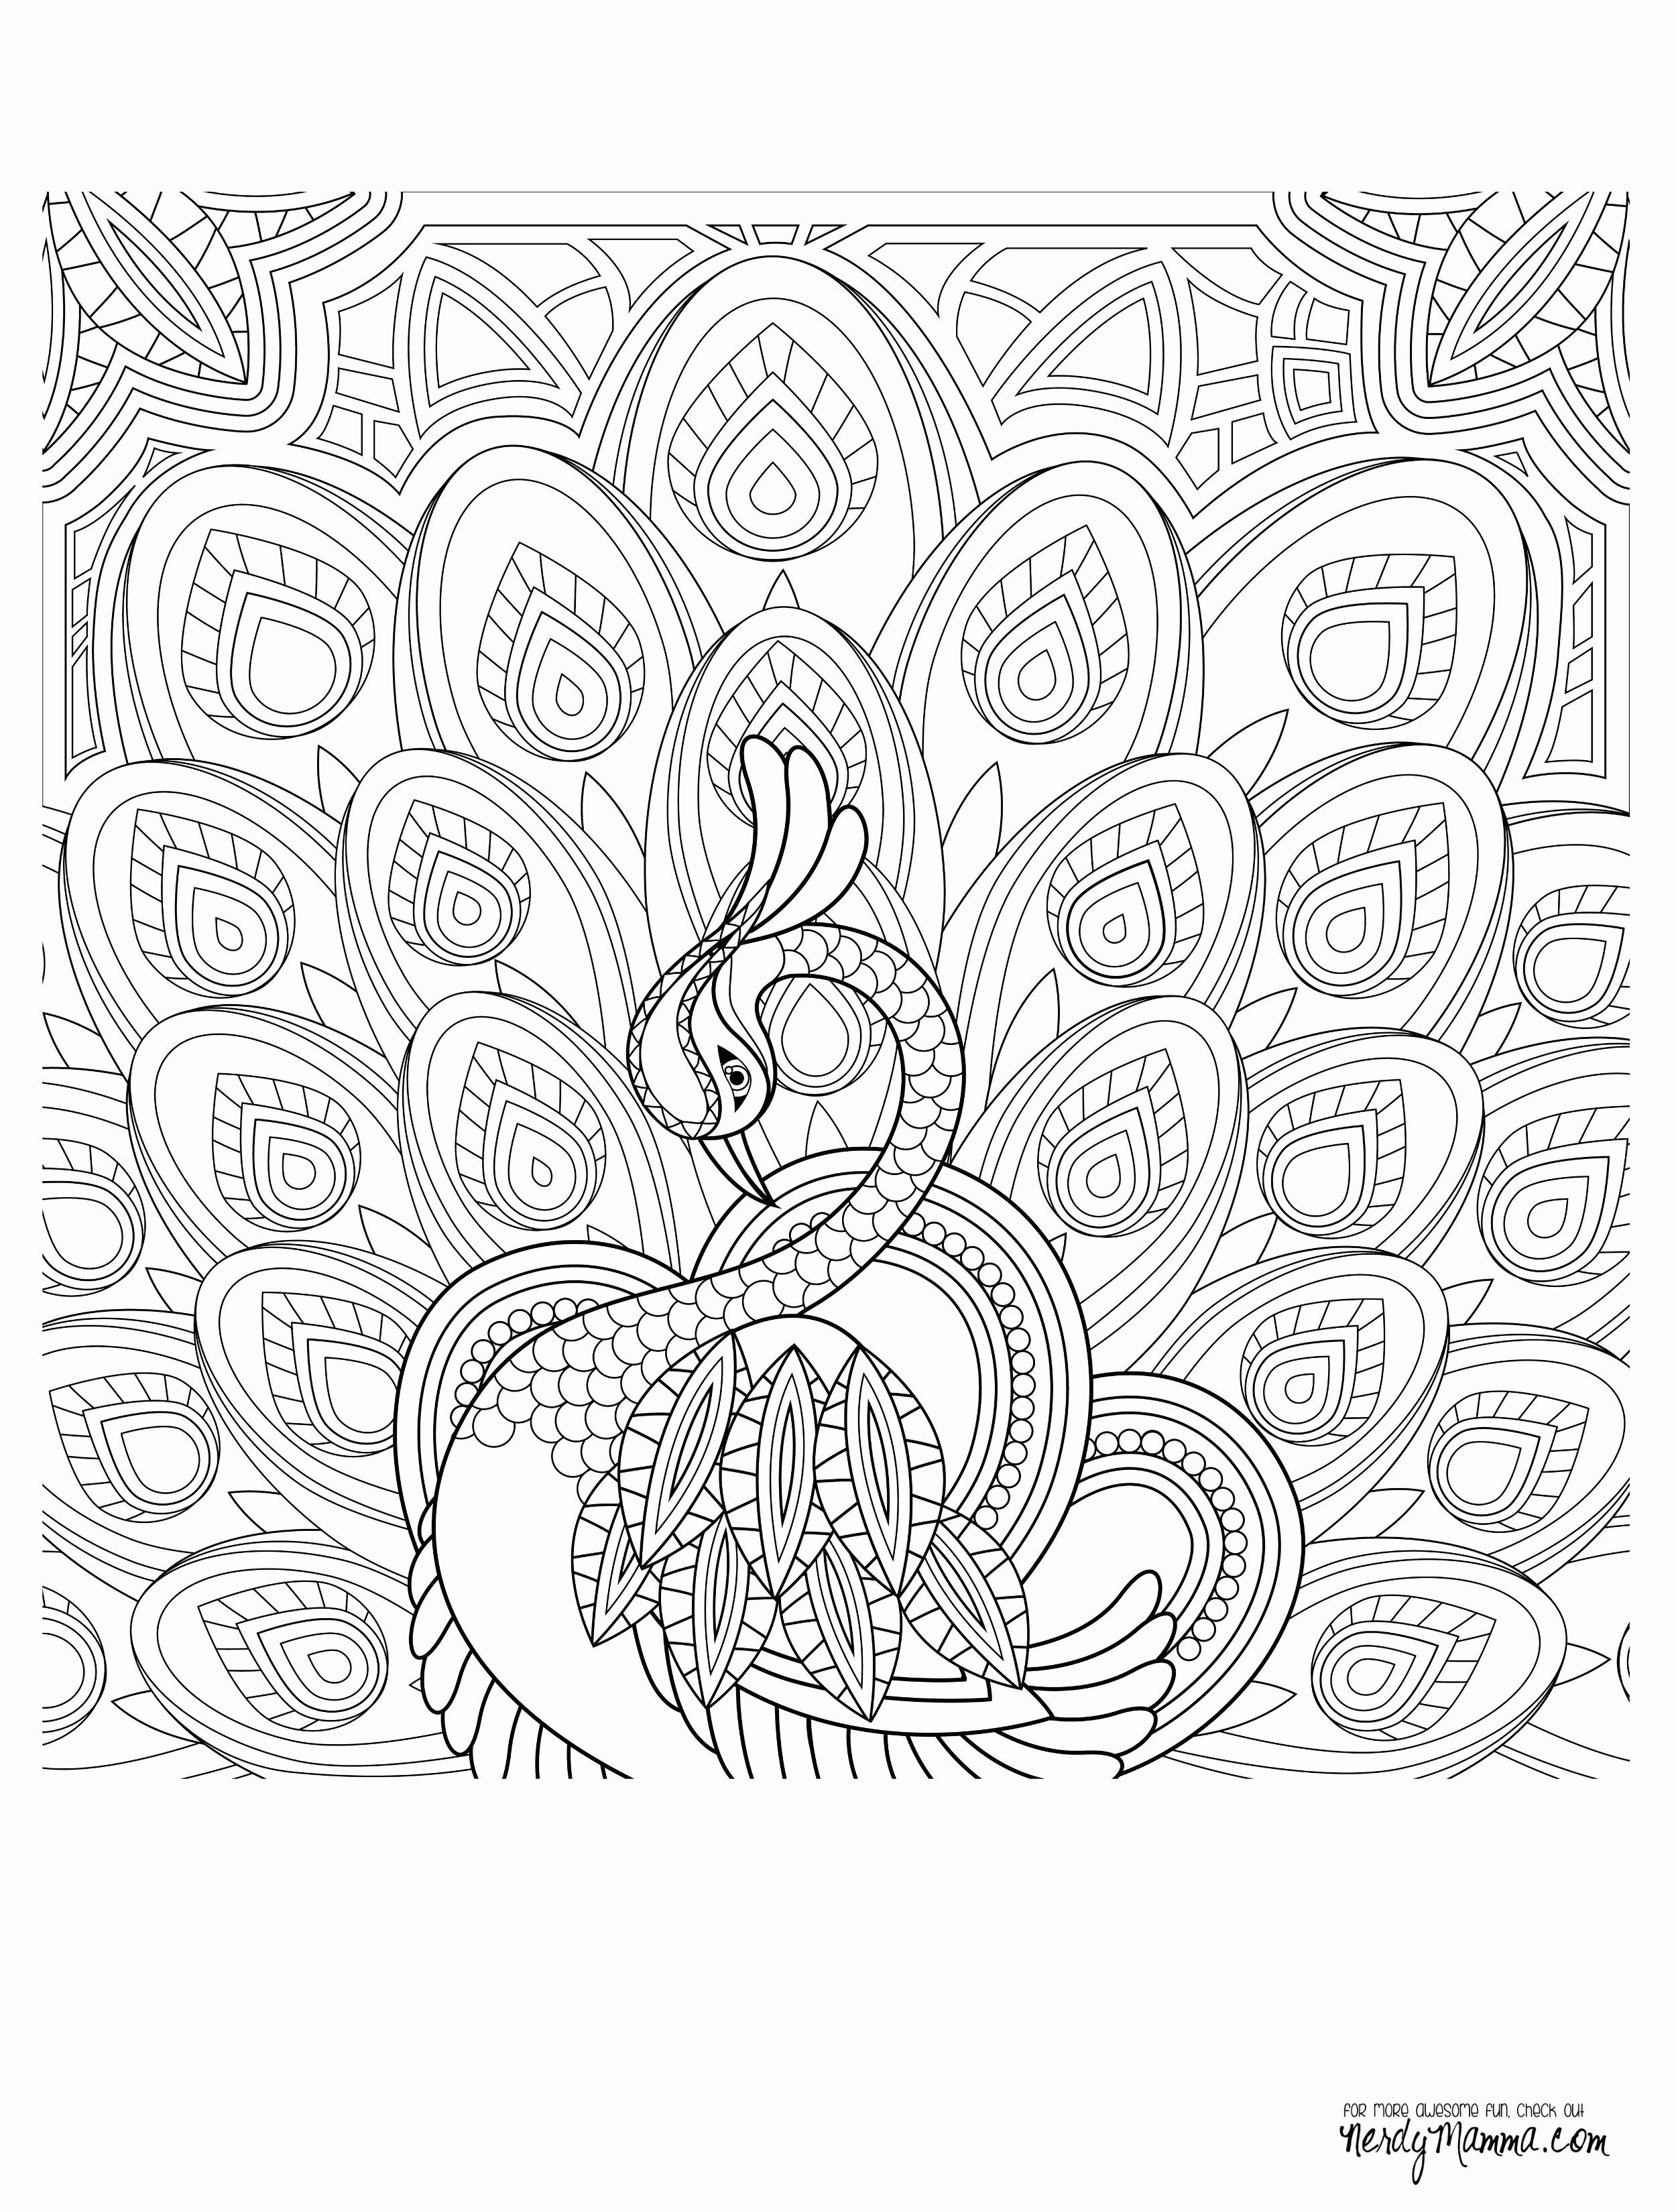 Destiny Coloring Pages  Download 7j - Free For Children